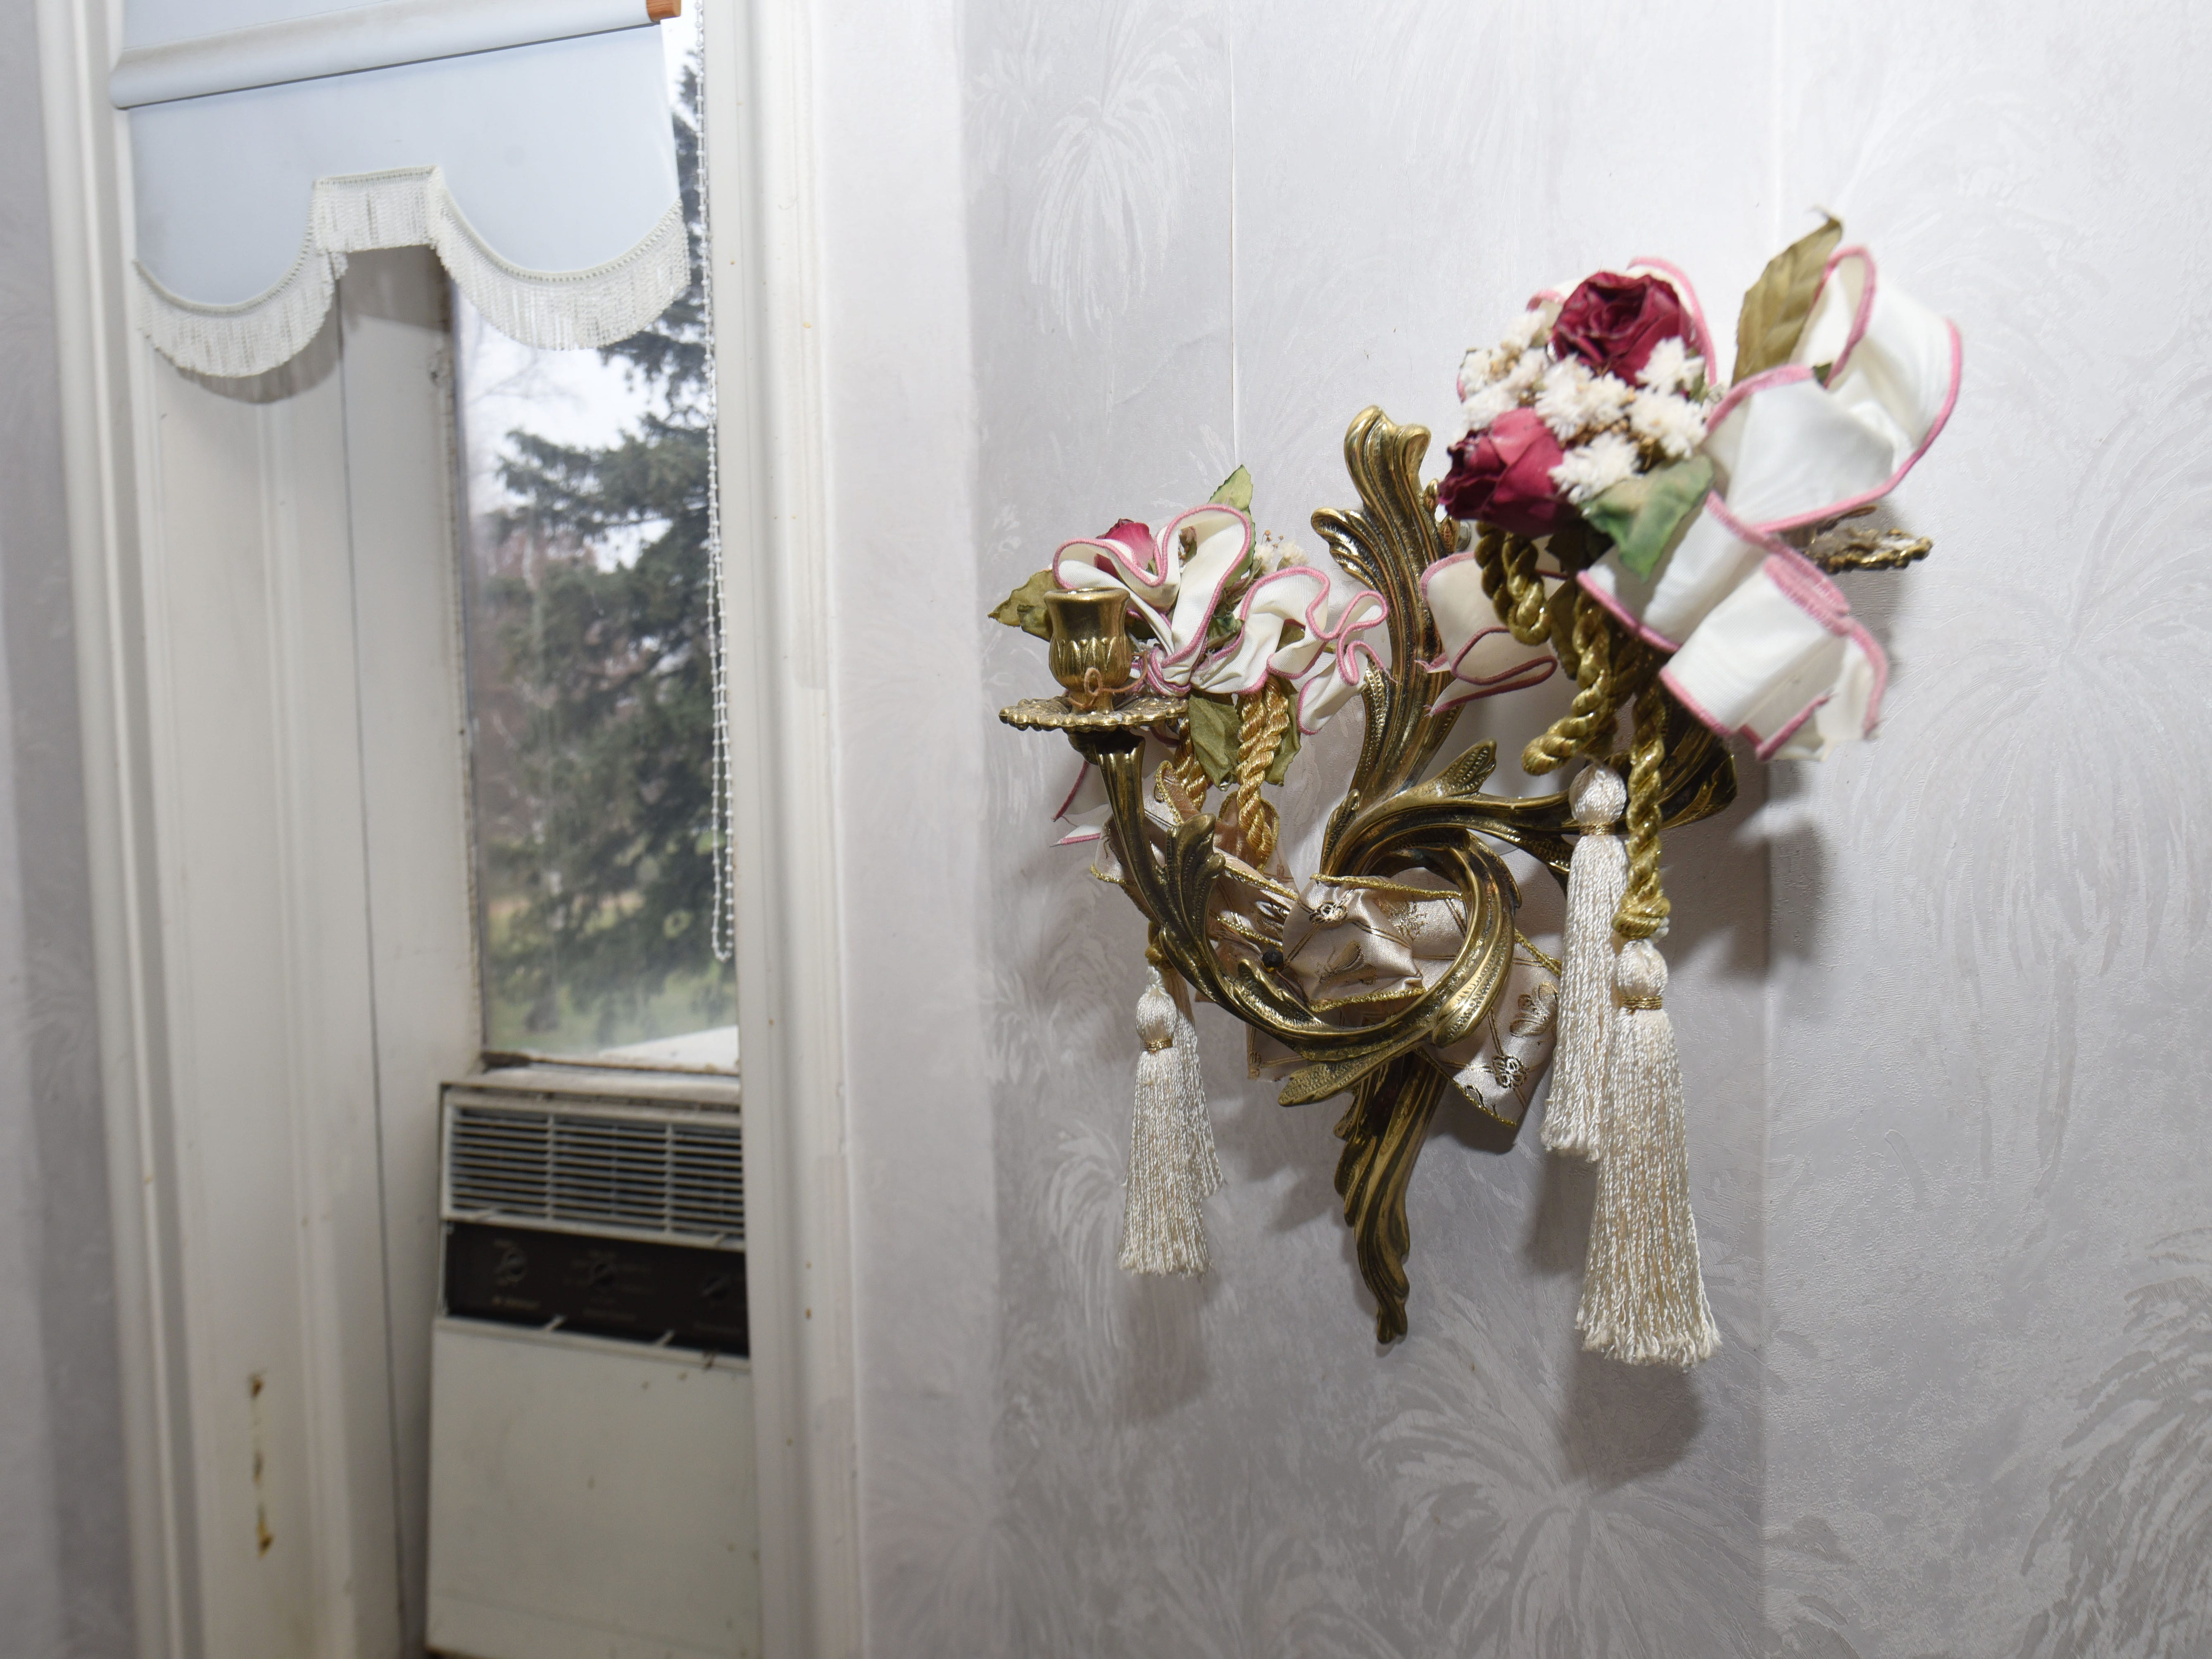 Ribbons, flowers and tassels adorn a sconce.